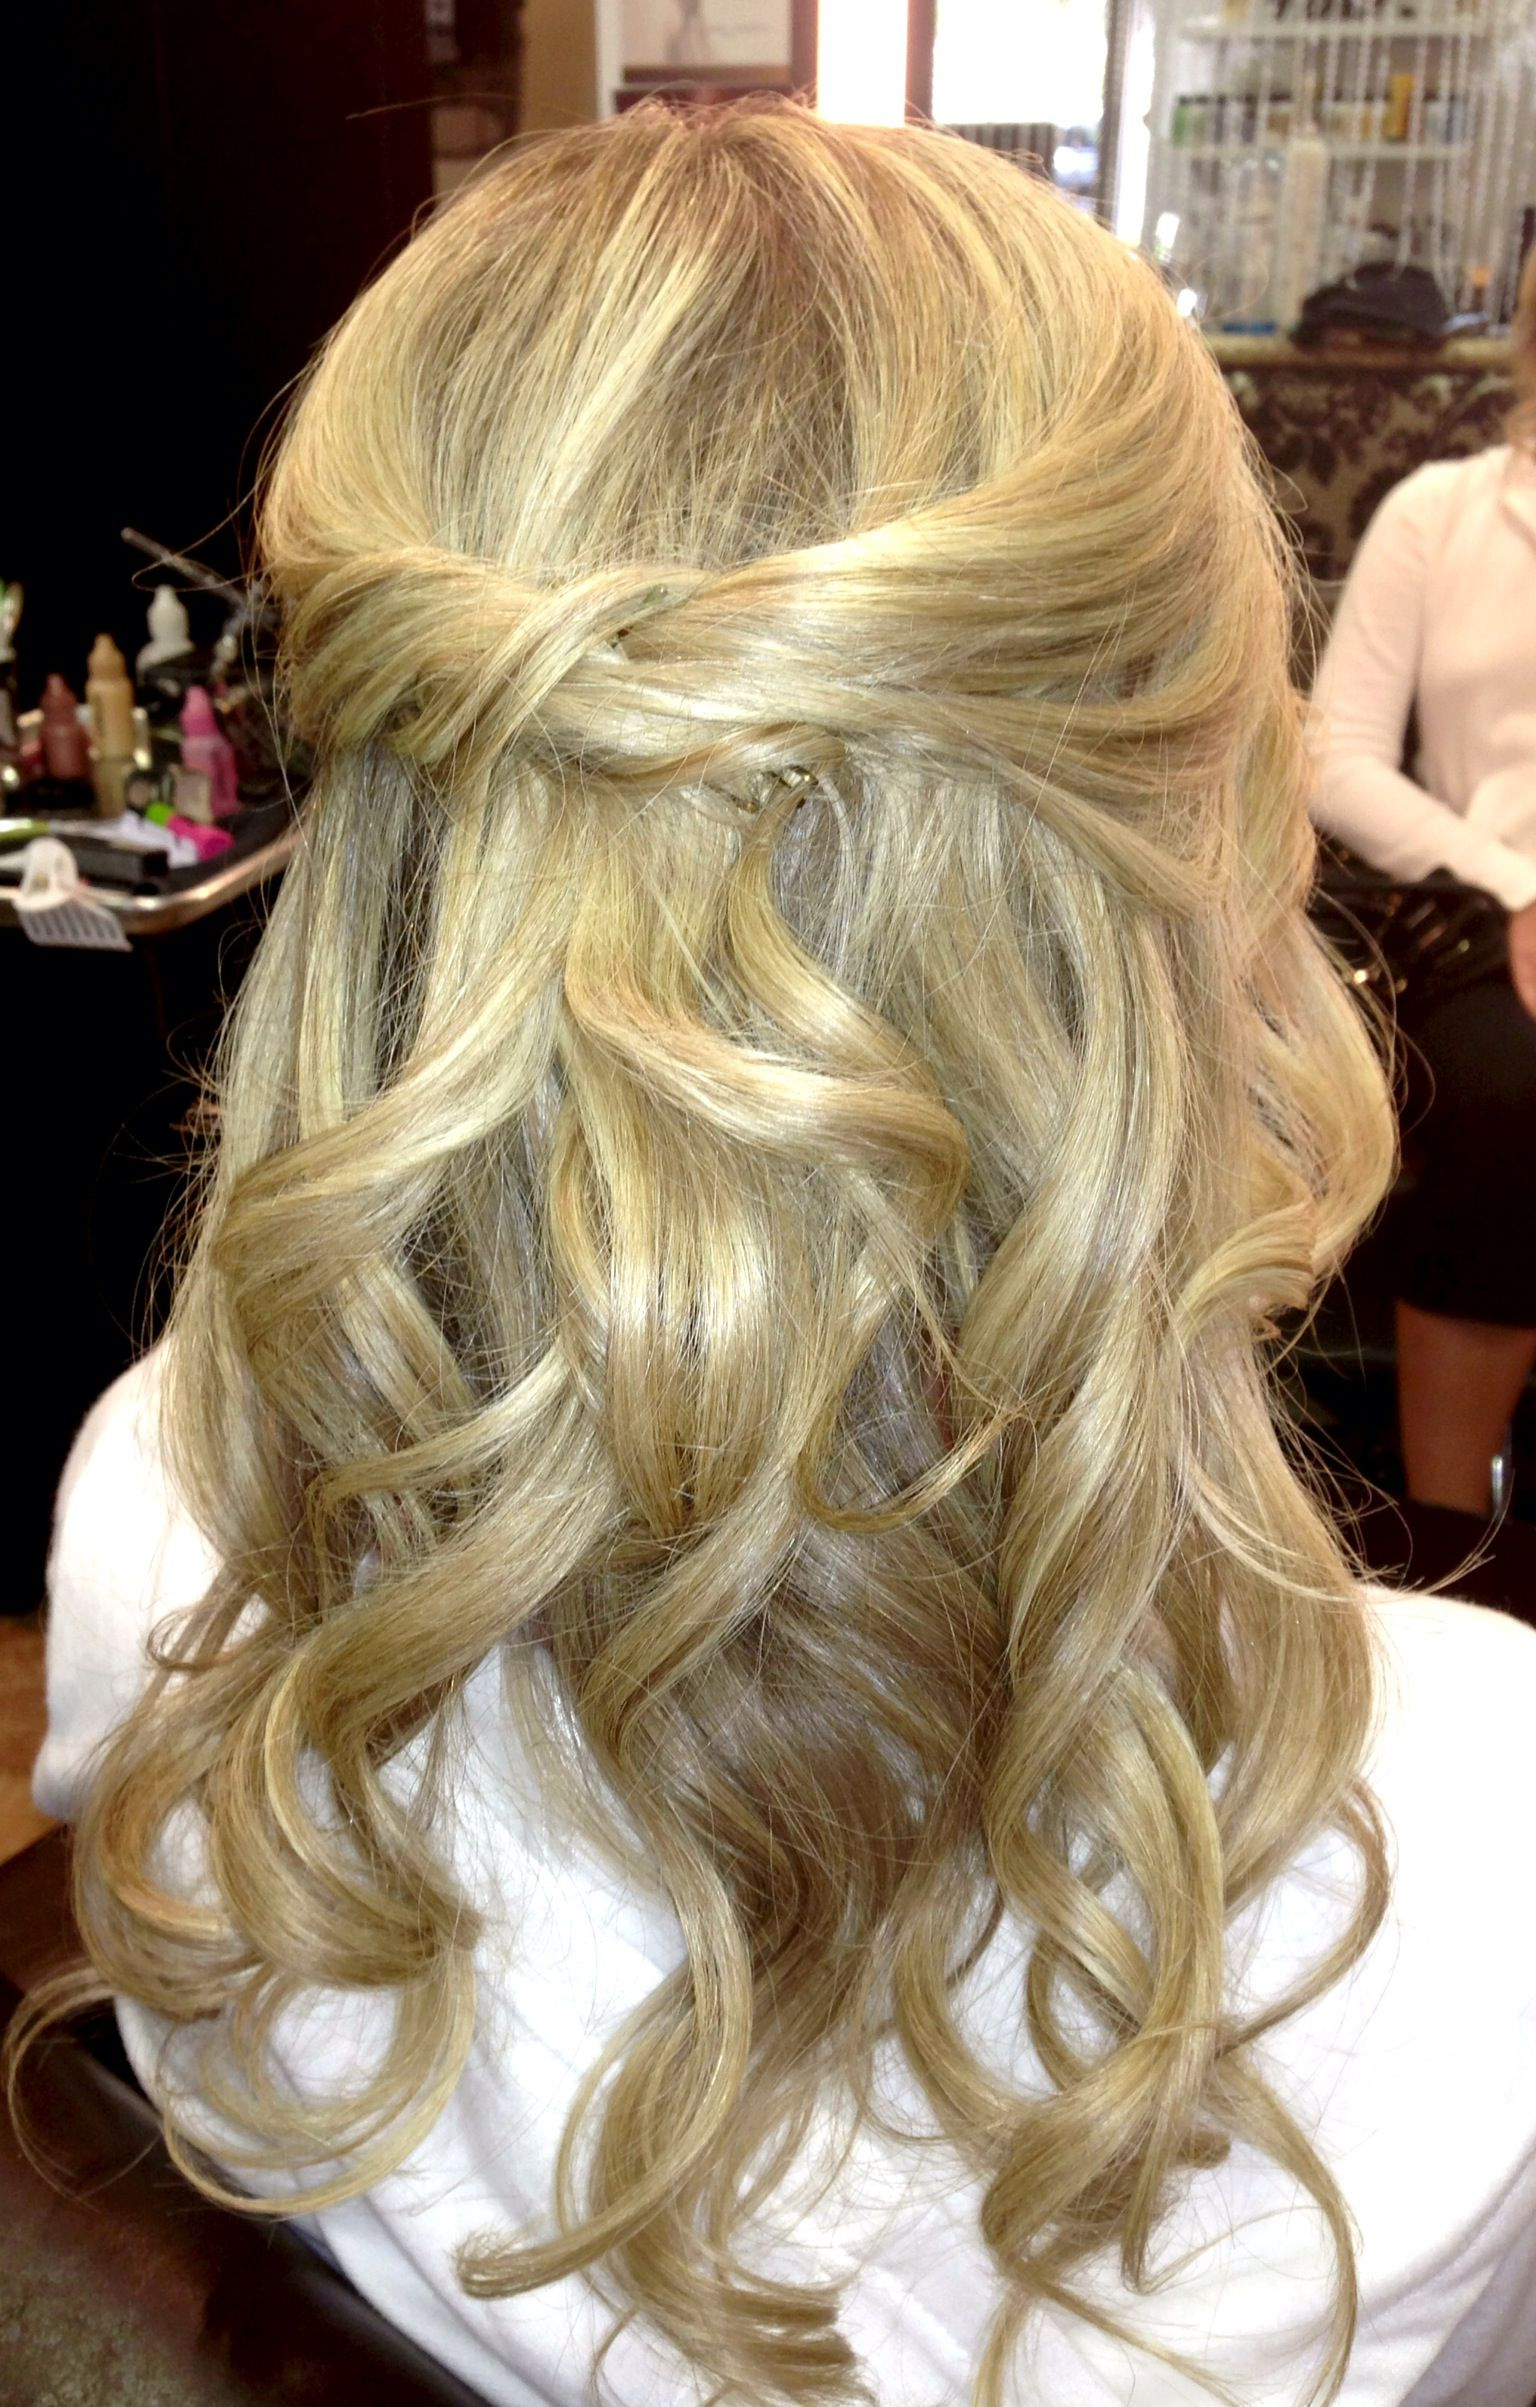 Best And Newest Loose Highlighted Half Do Hairstyles Intended For Half Up Half Down Loose Curls Hairstyling For This (View 2 of 20)